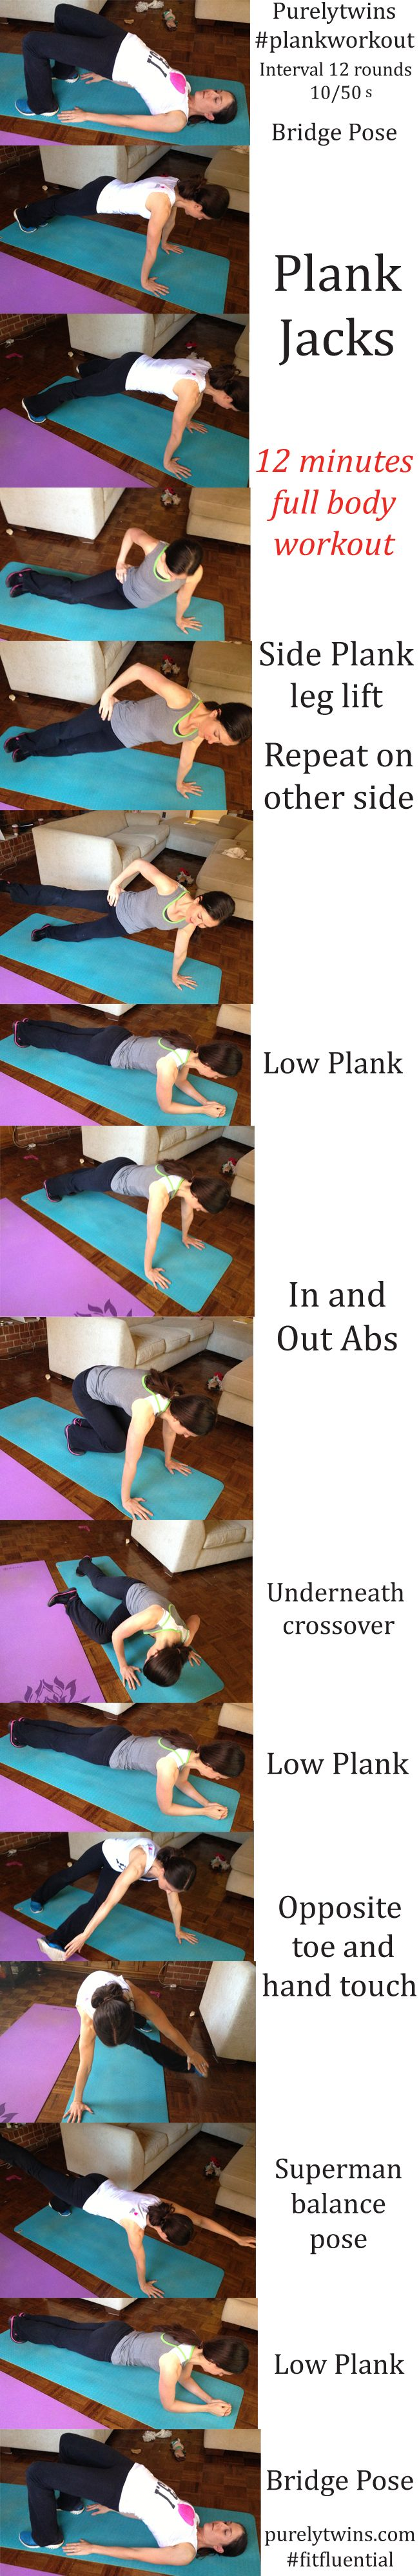 12-minute plank workout. I love planks, really works the whole body and engages the core.